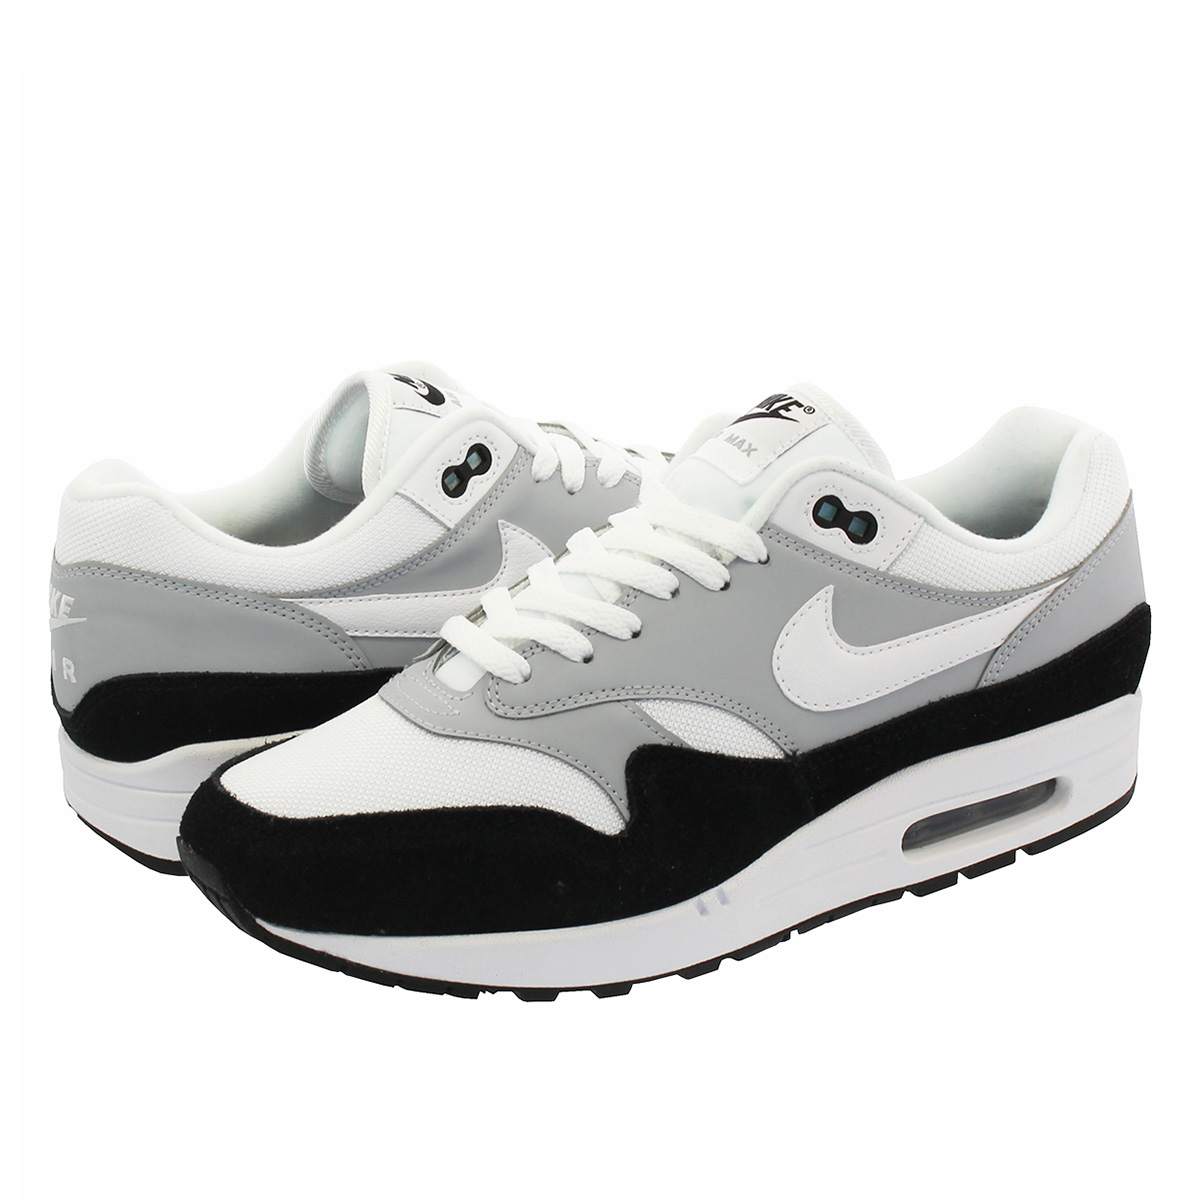 online store 05a27 37bc8 NIKE AIR MAX 1 Kie Ney AMAX 1 WOLF GREY WHITE BLACK